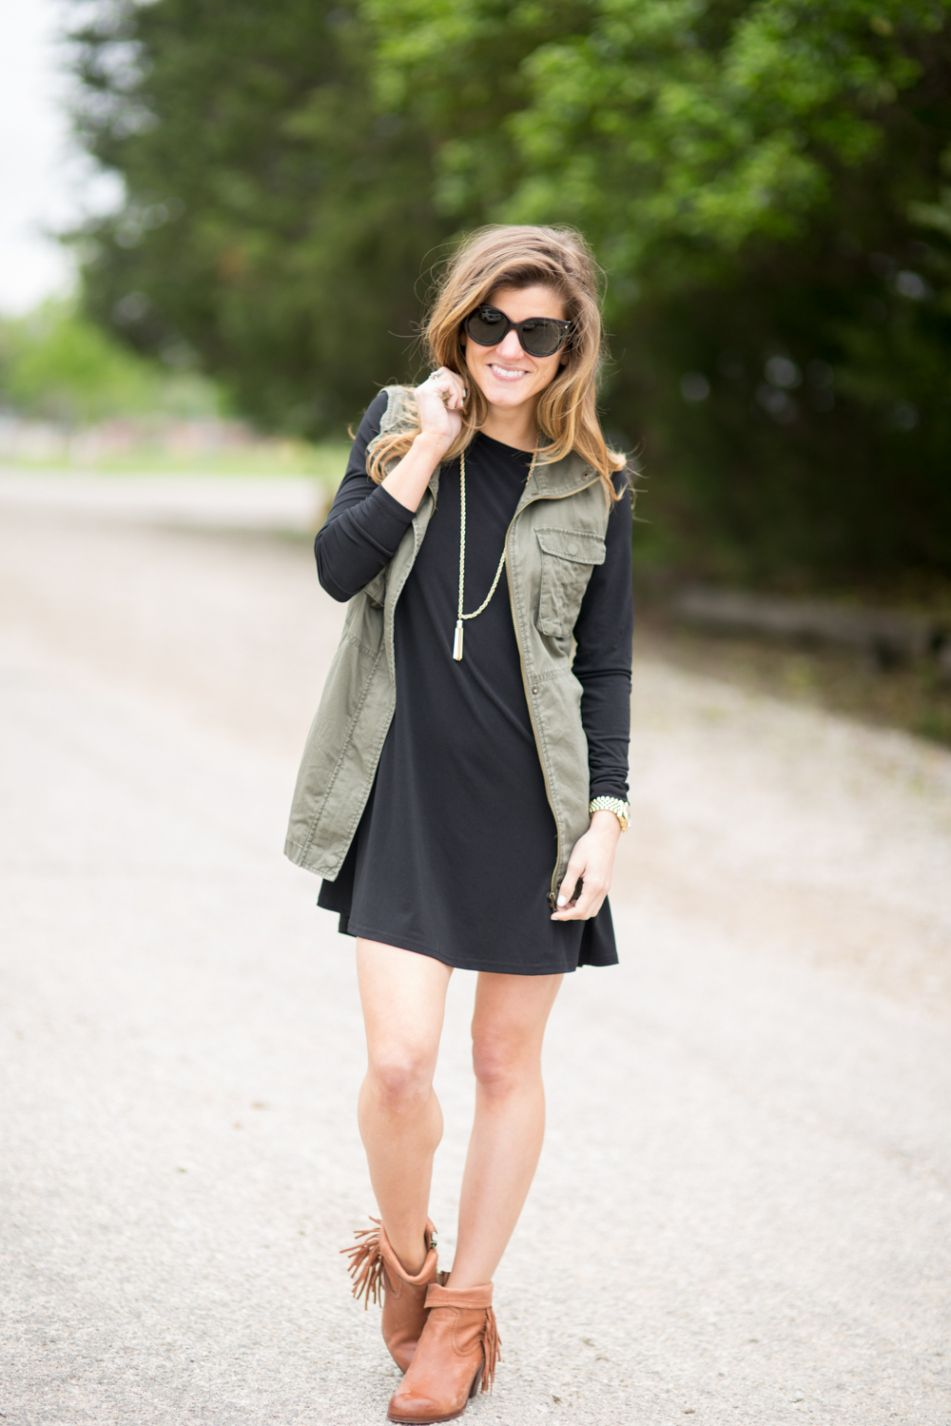 To acquire Black on Black Gold BrightonTheDay pictures trends